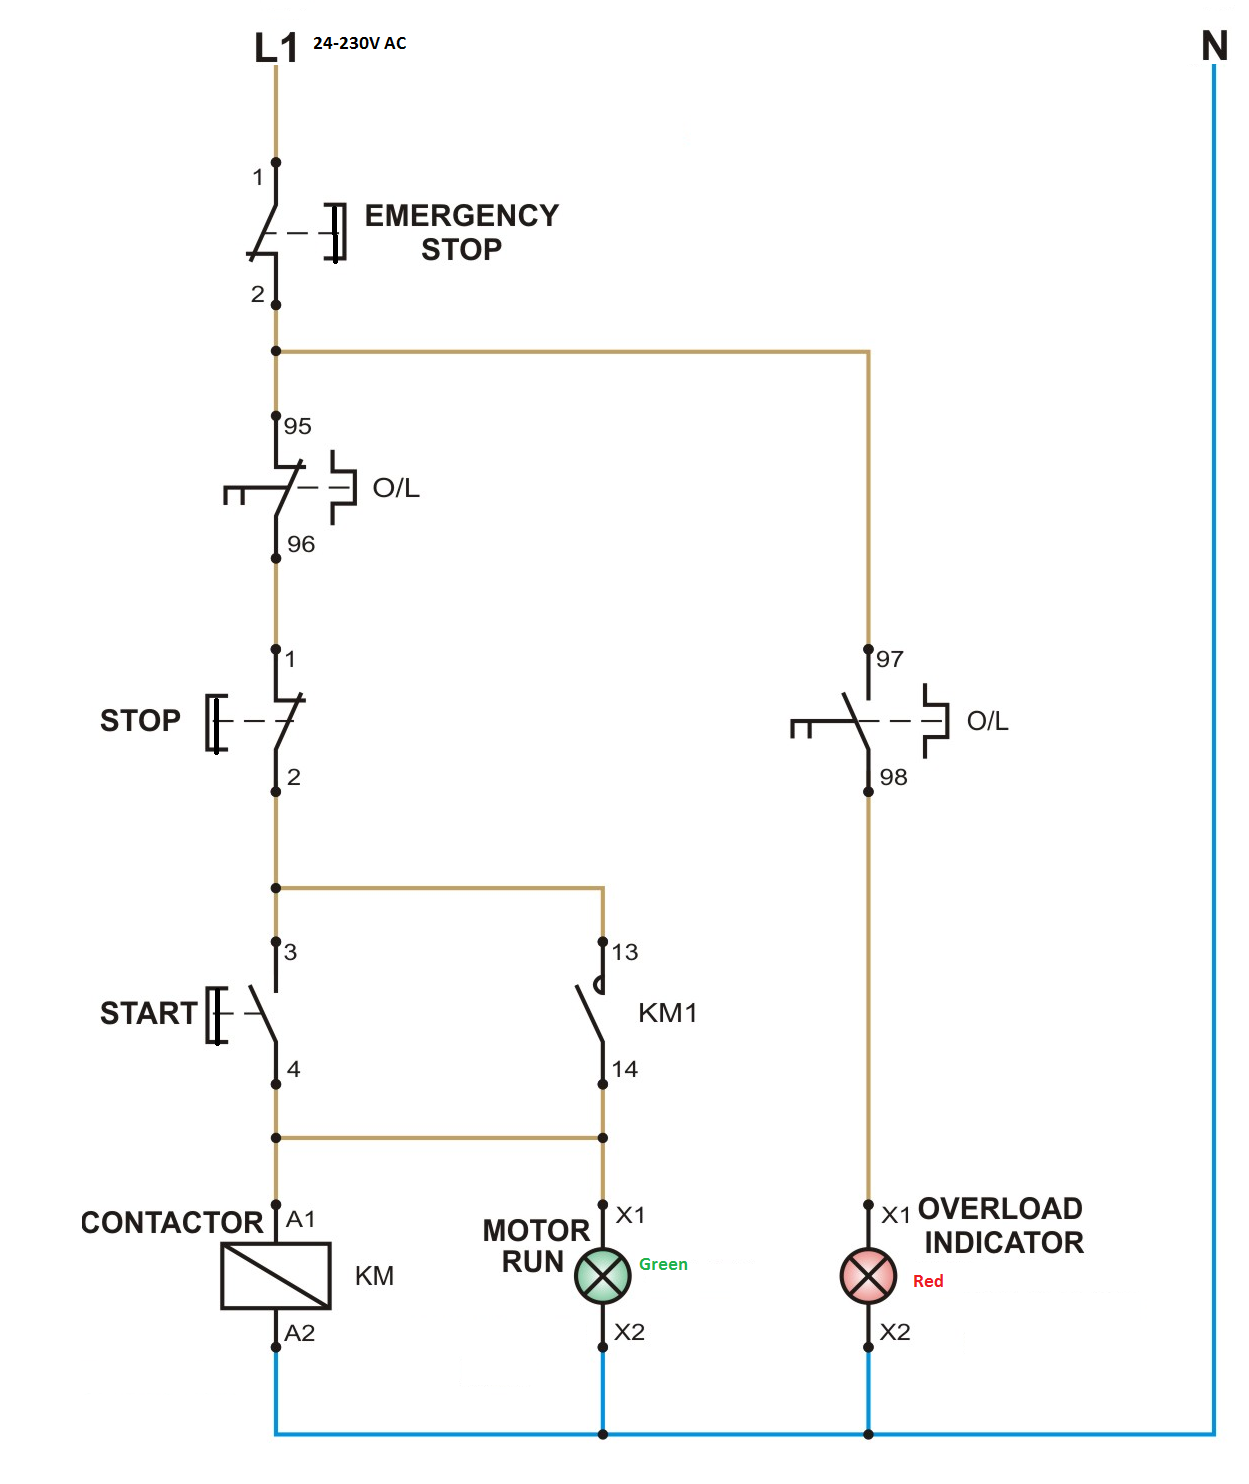 dol wiring diagram  dol  get free image about wiring diagram